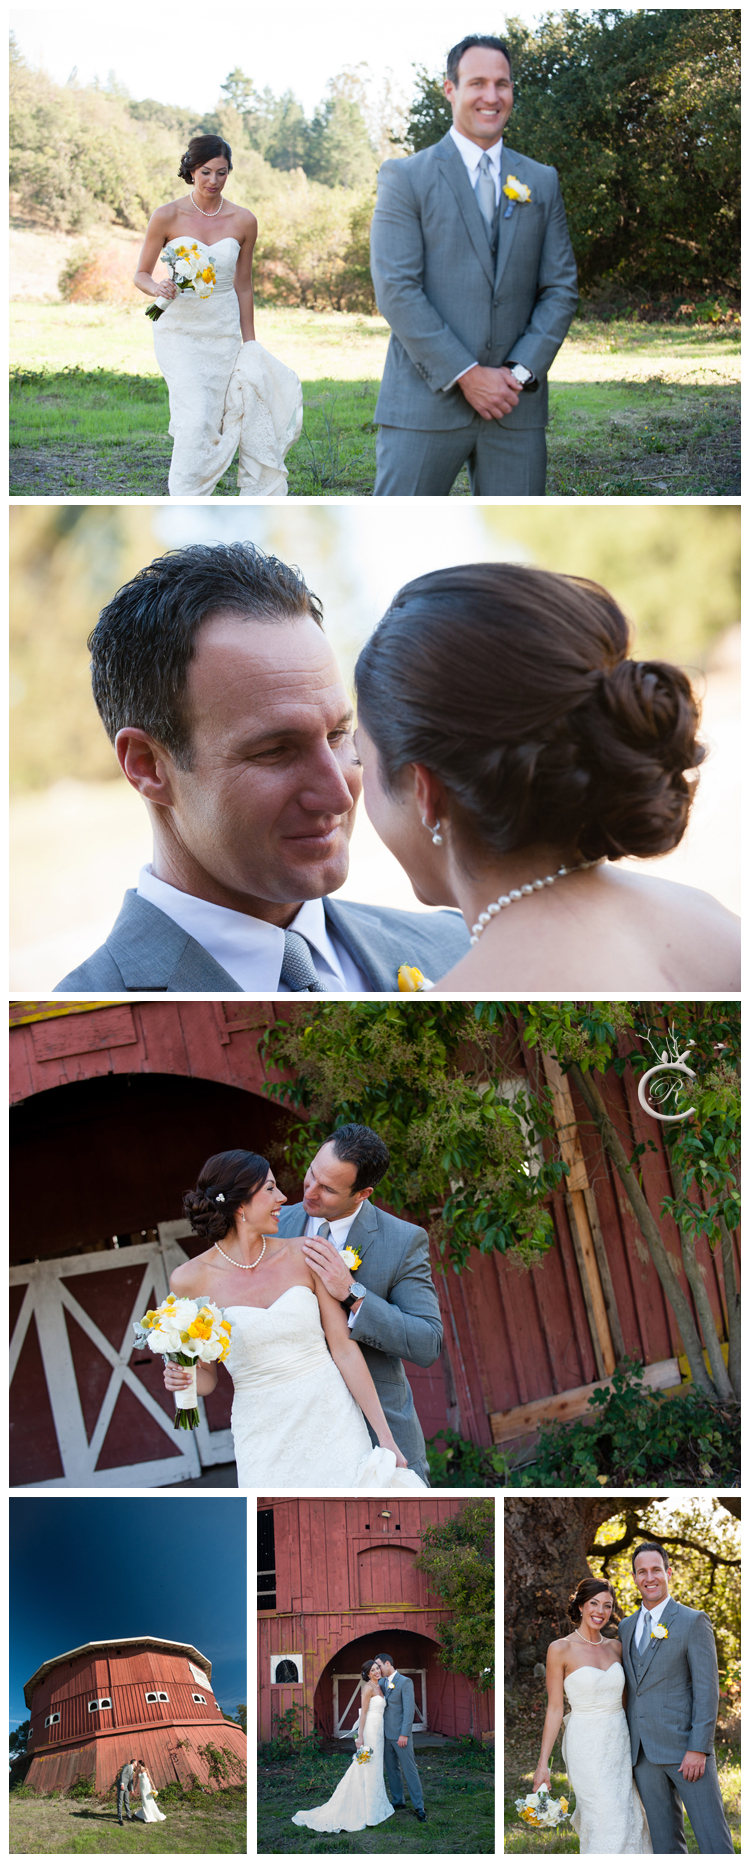 Bridal portraits at the barn at St. Francis Winery